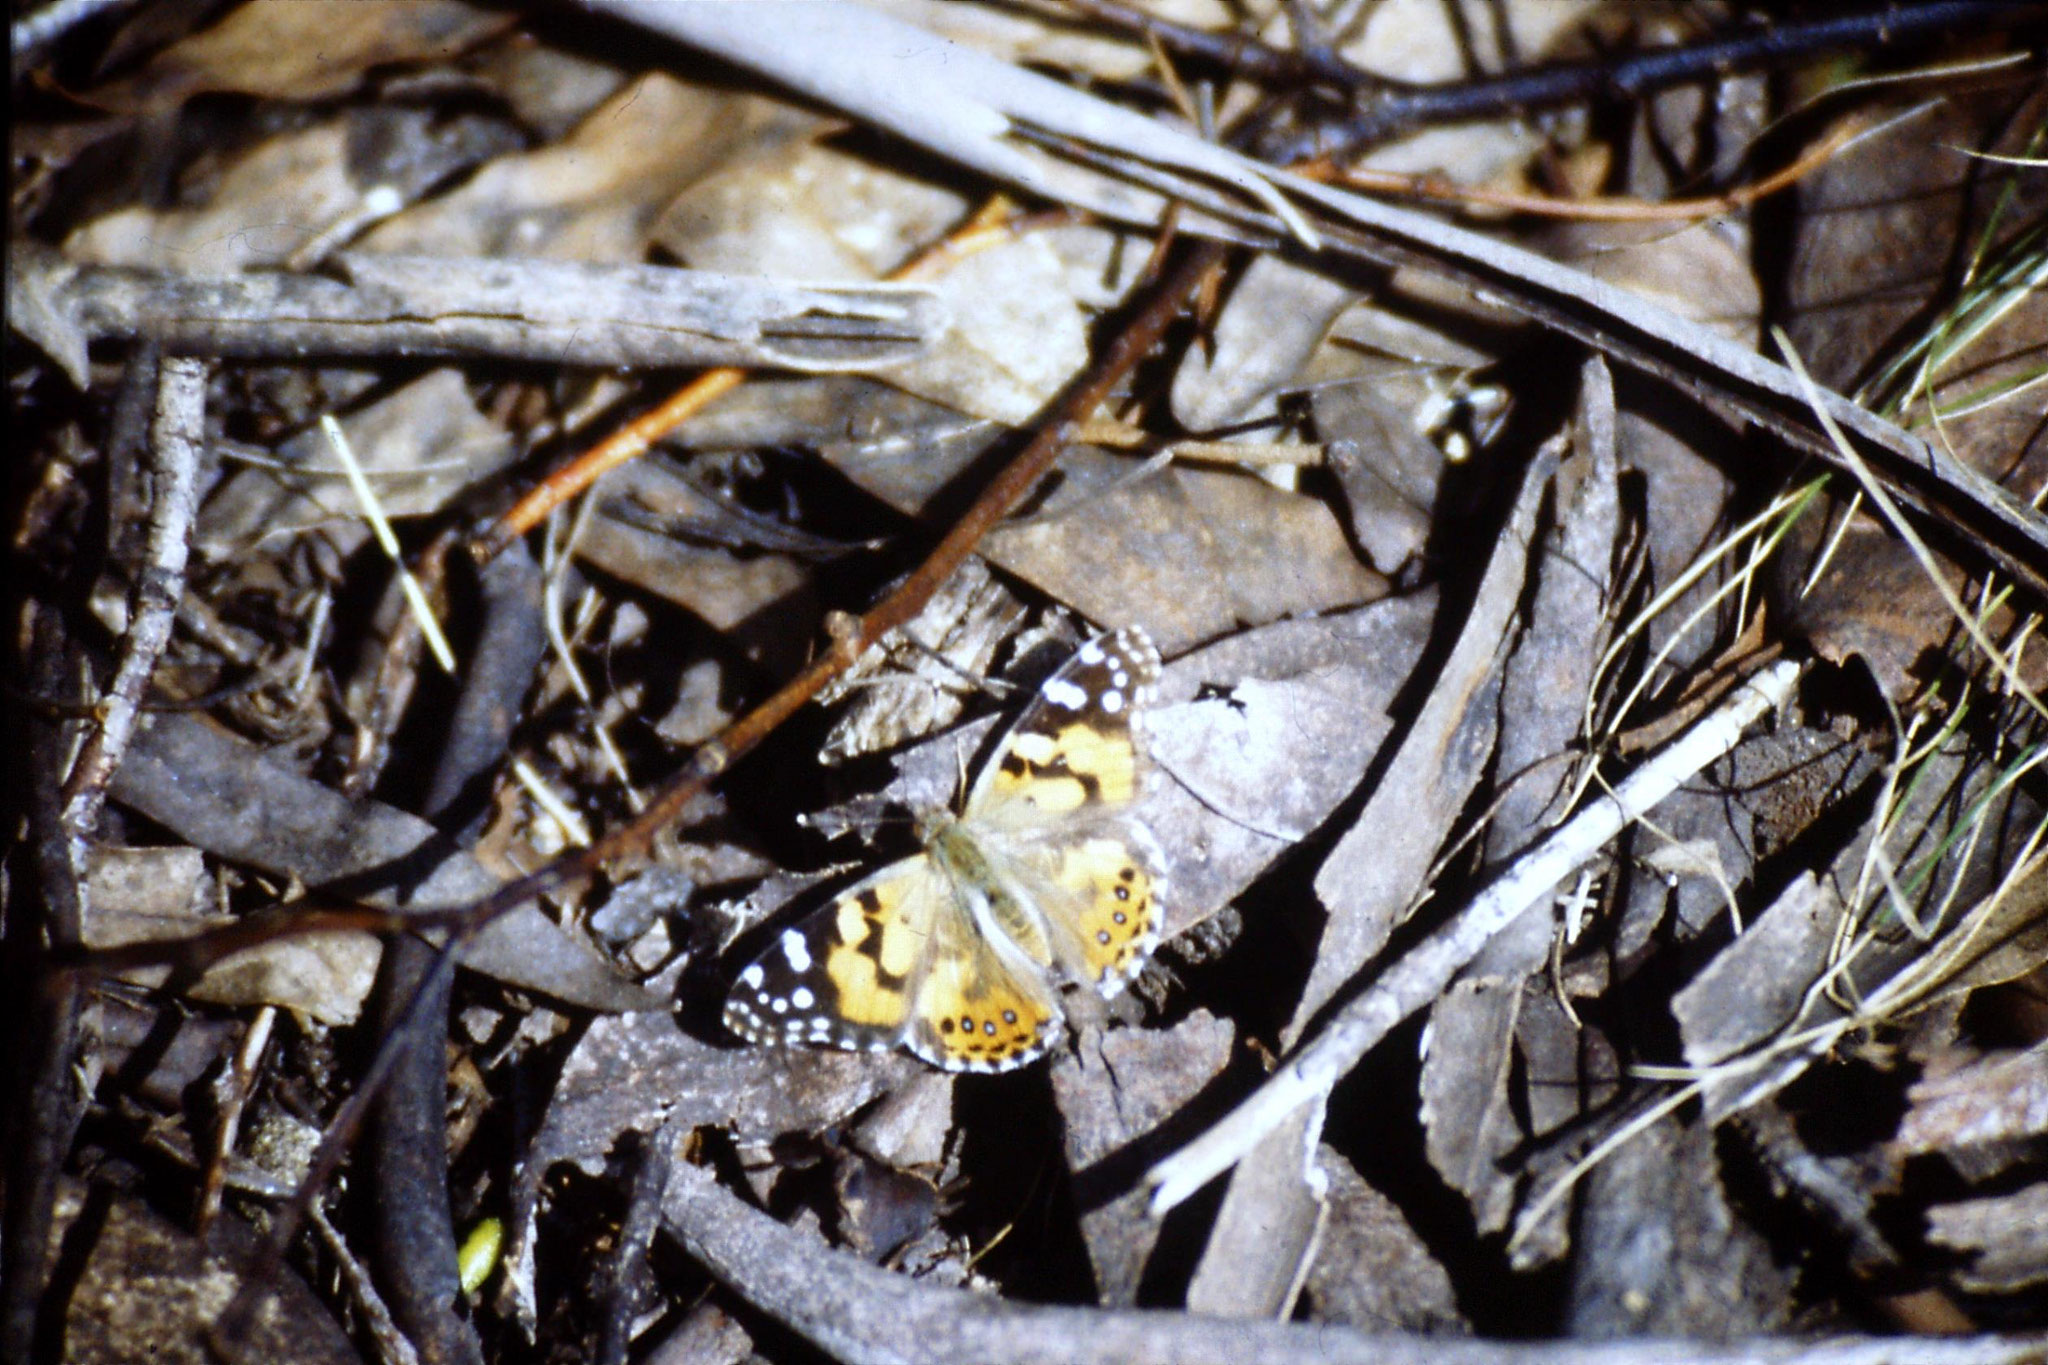 28/9/1990: 0: Mt Buffalo, butterfly